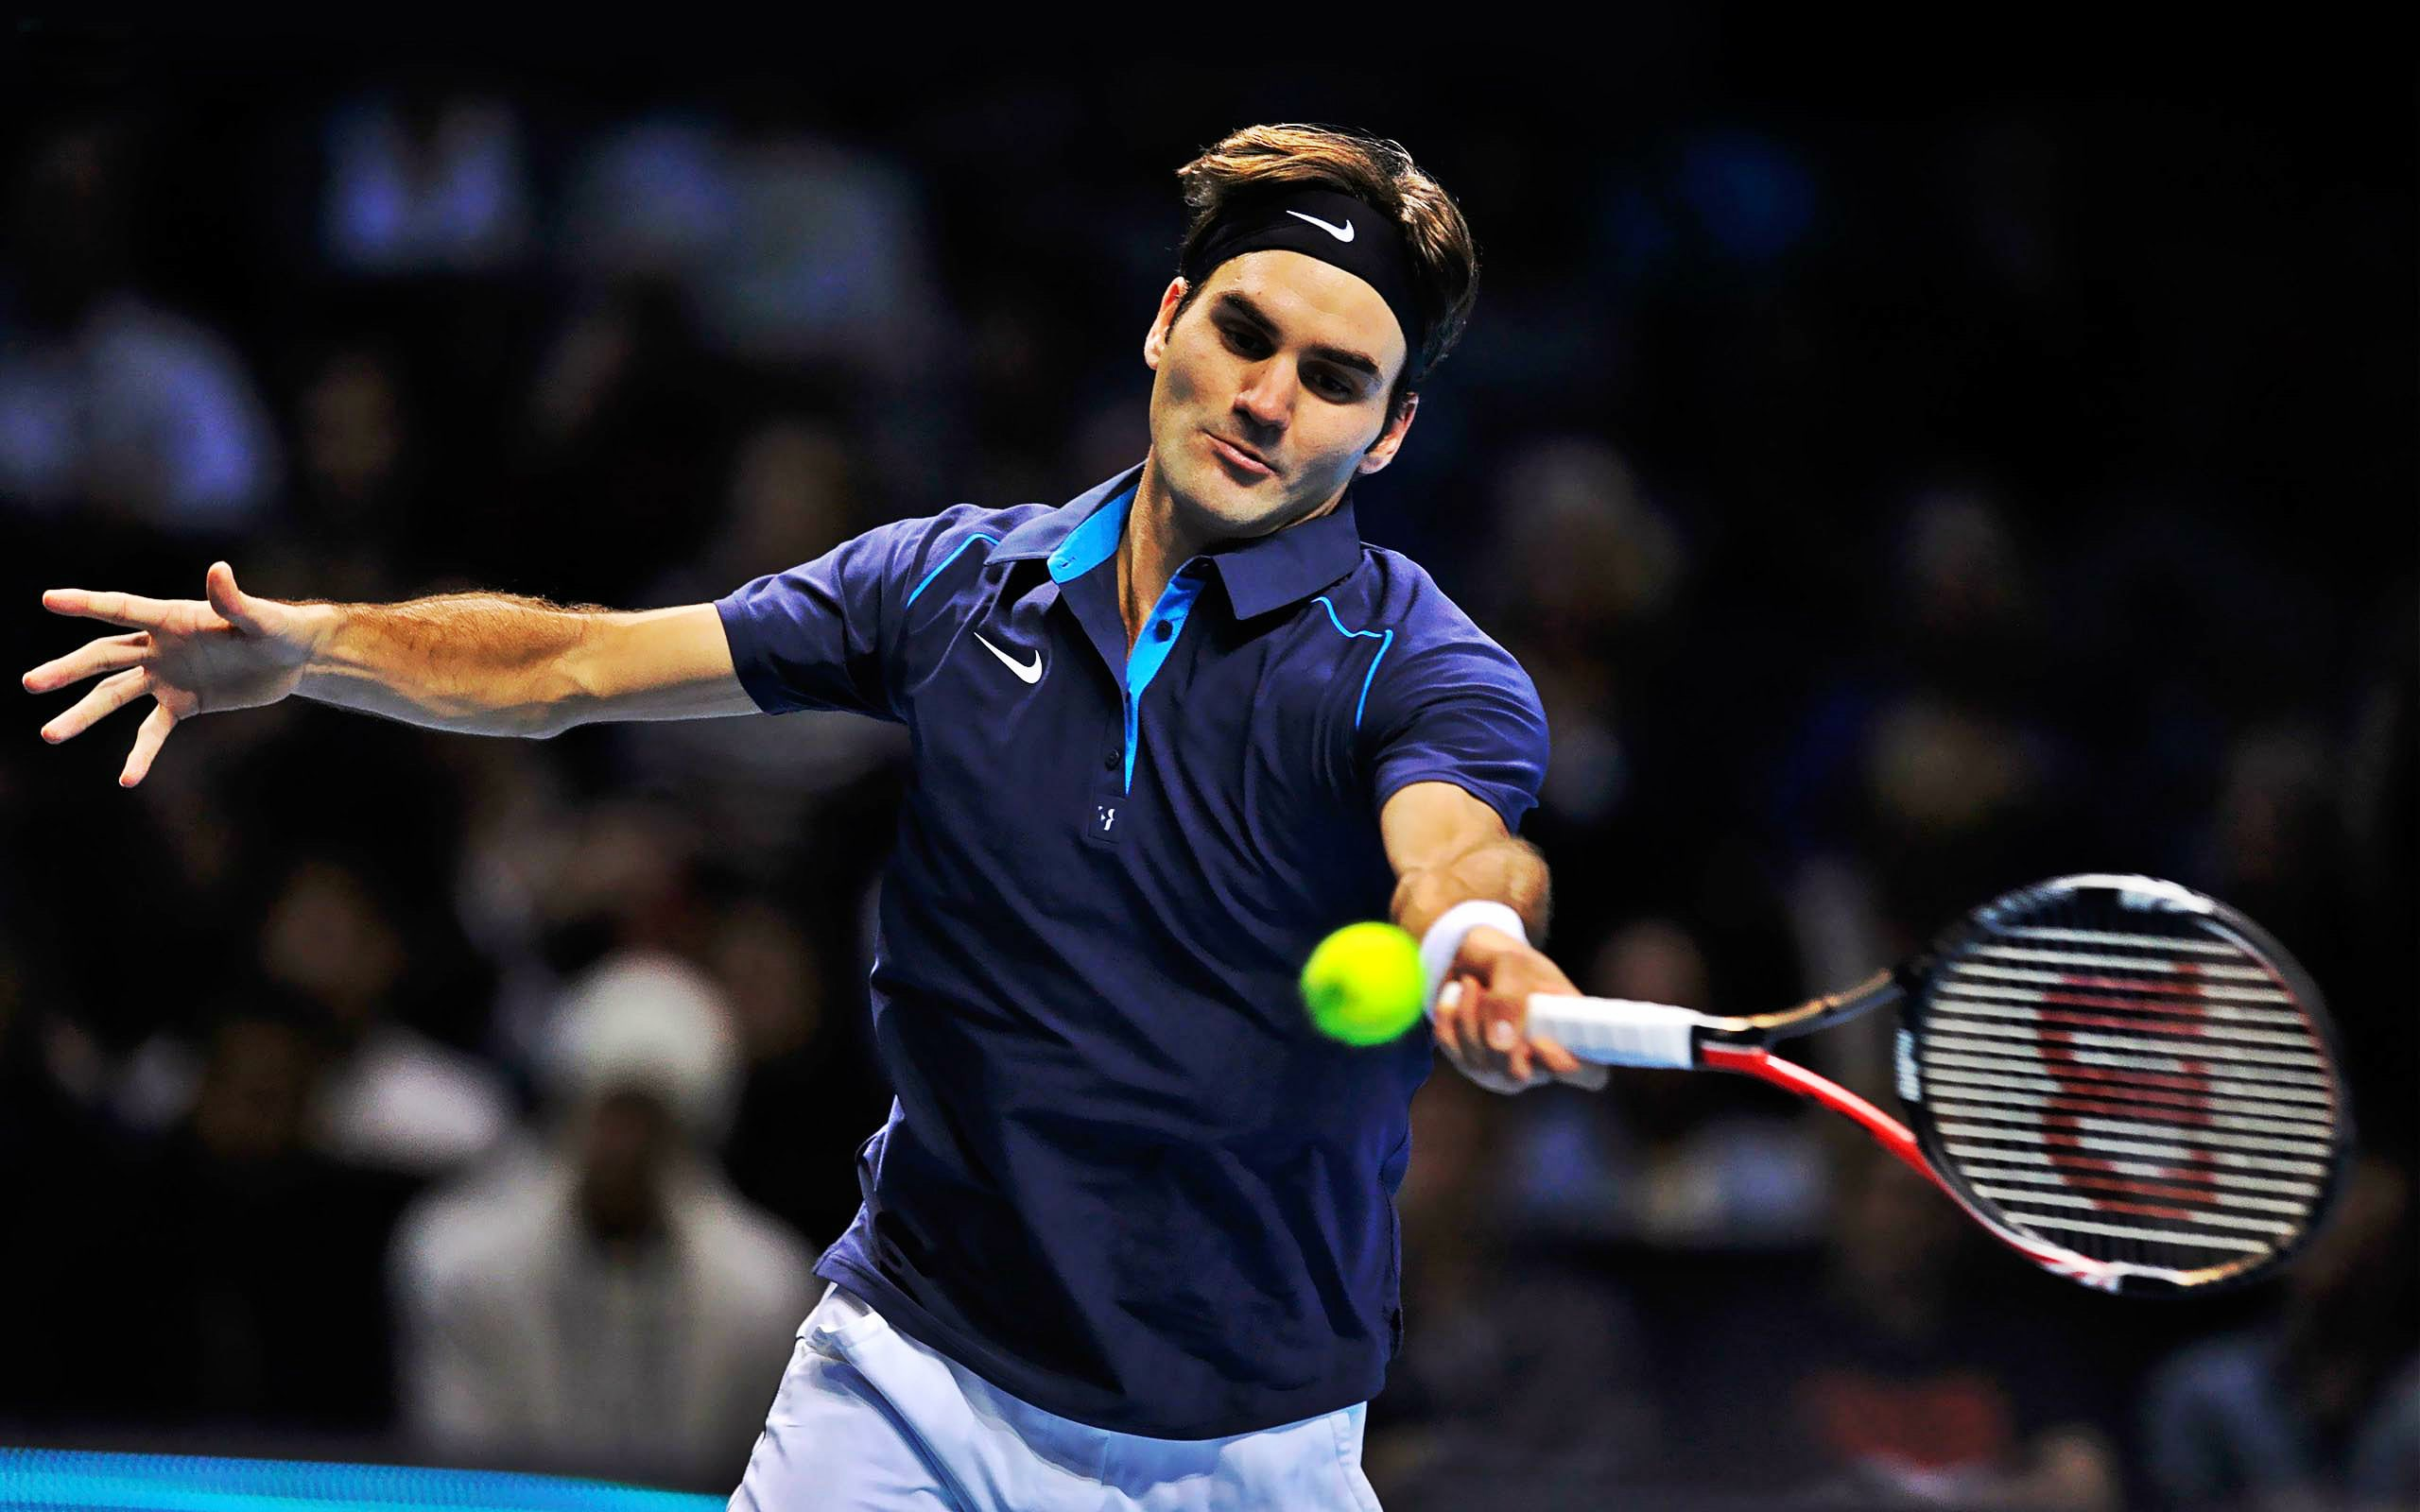 Roger Federer HD Wallpapers 7wallpapersnet 2560x1600